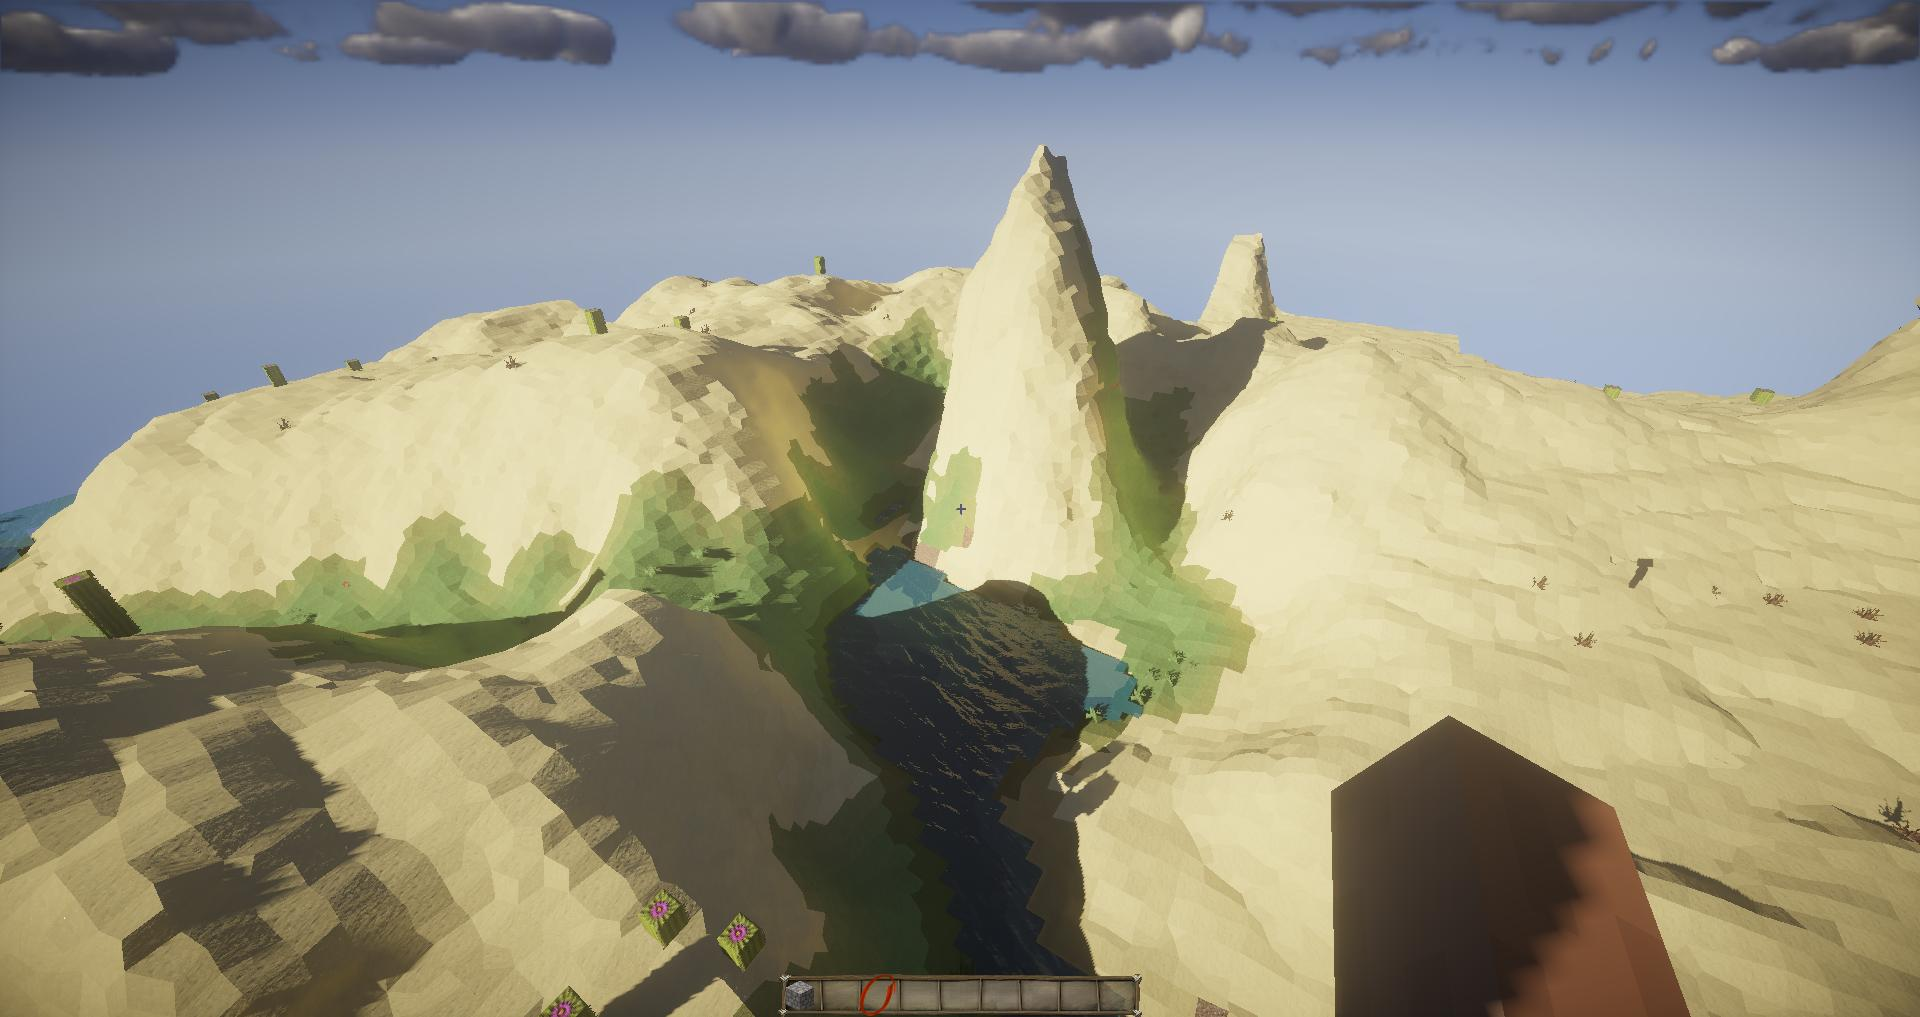 What Does Minecraft Look Like With Smooth Textures